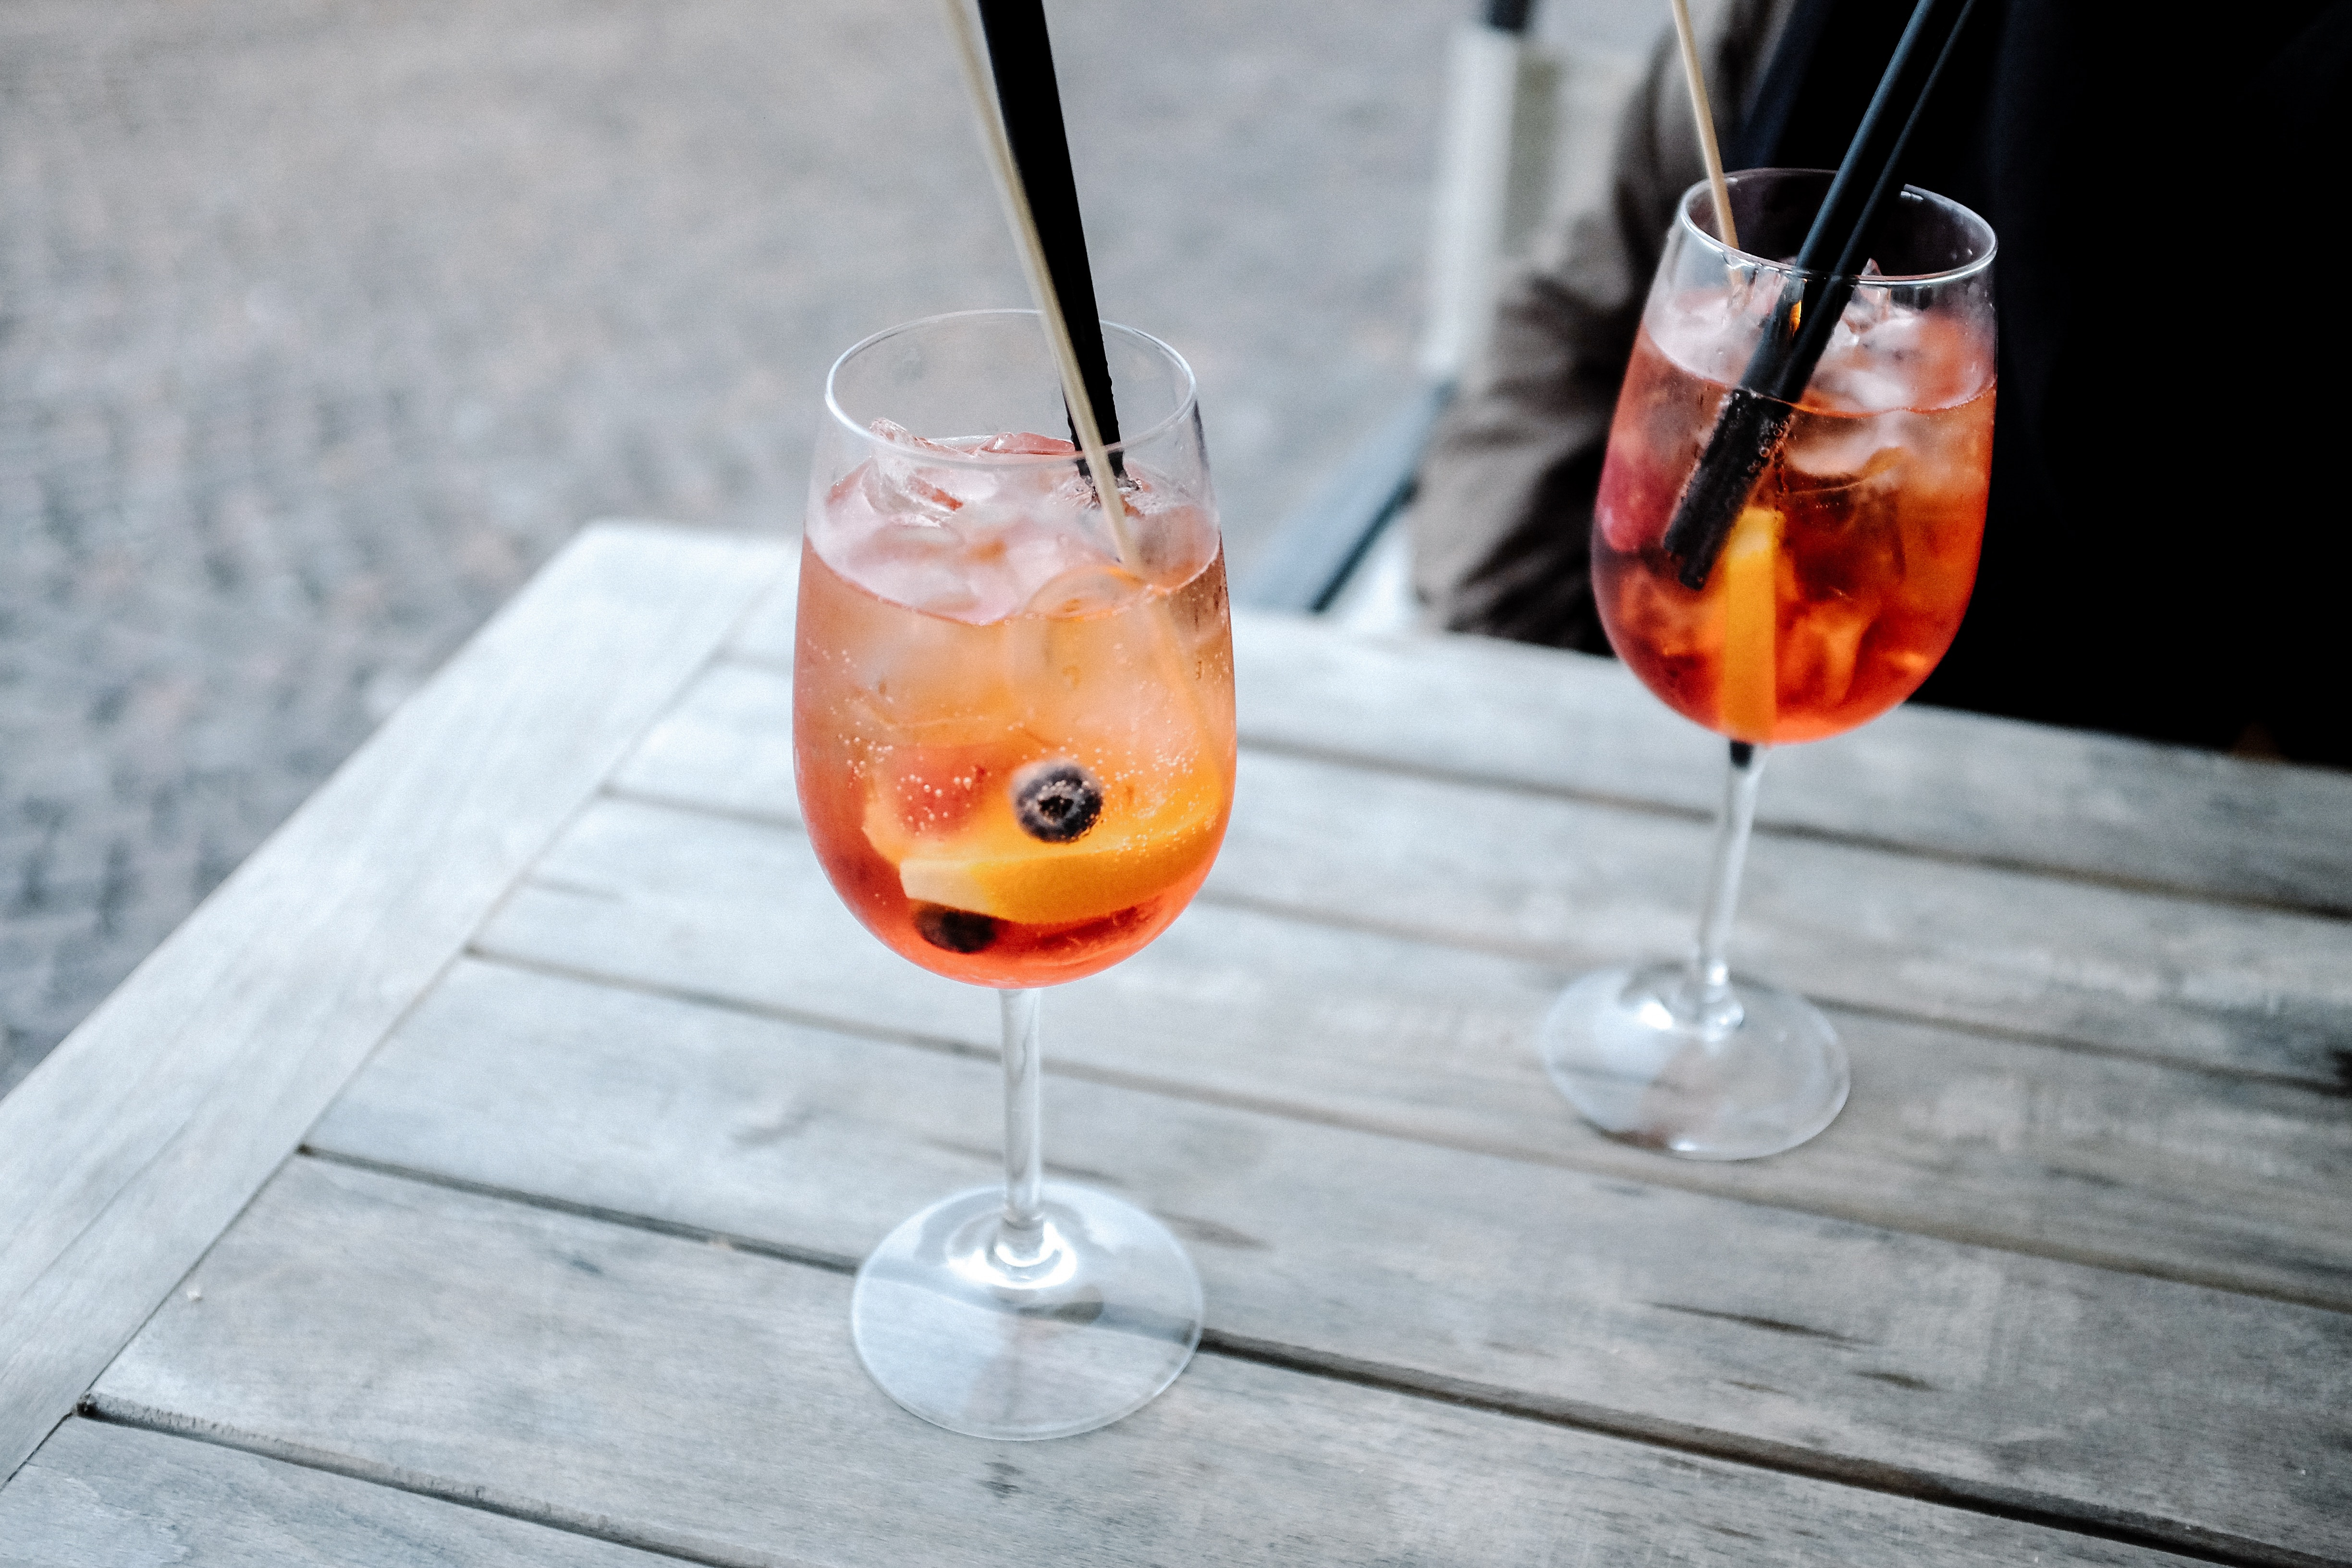 History Of The Spritz The Best Aperitivo In Italy